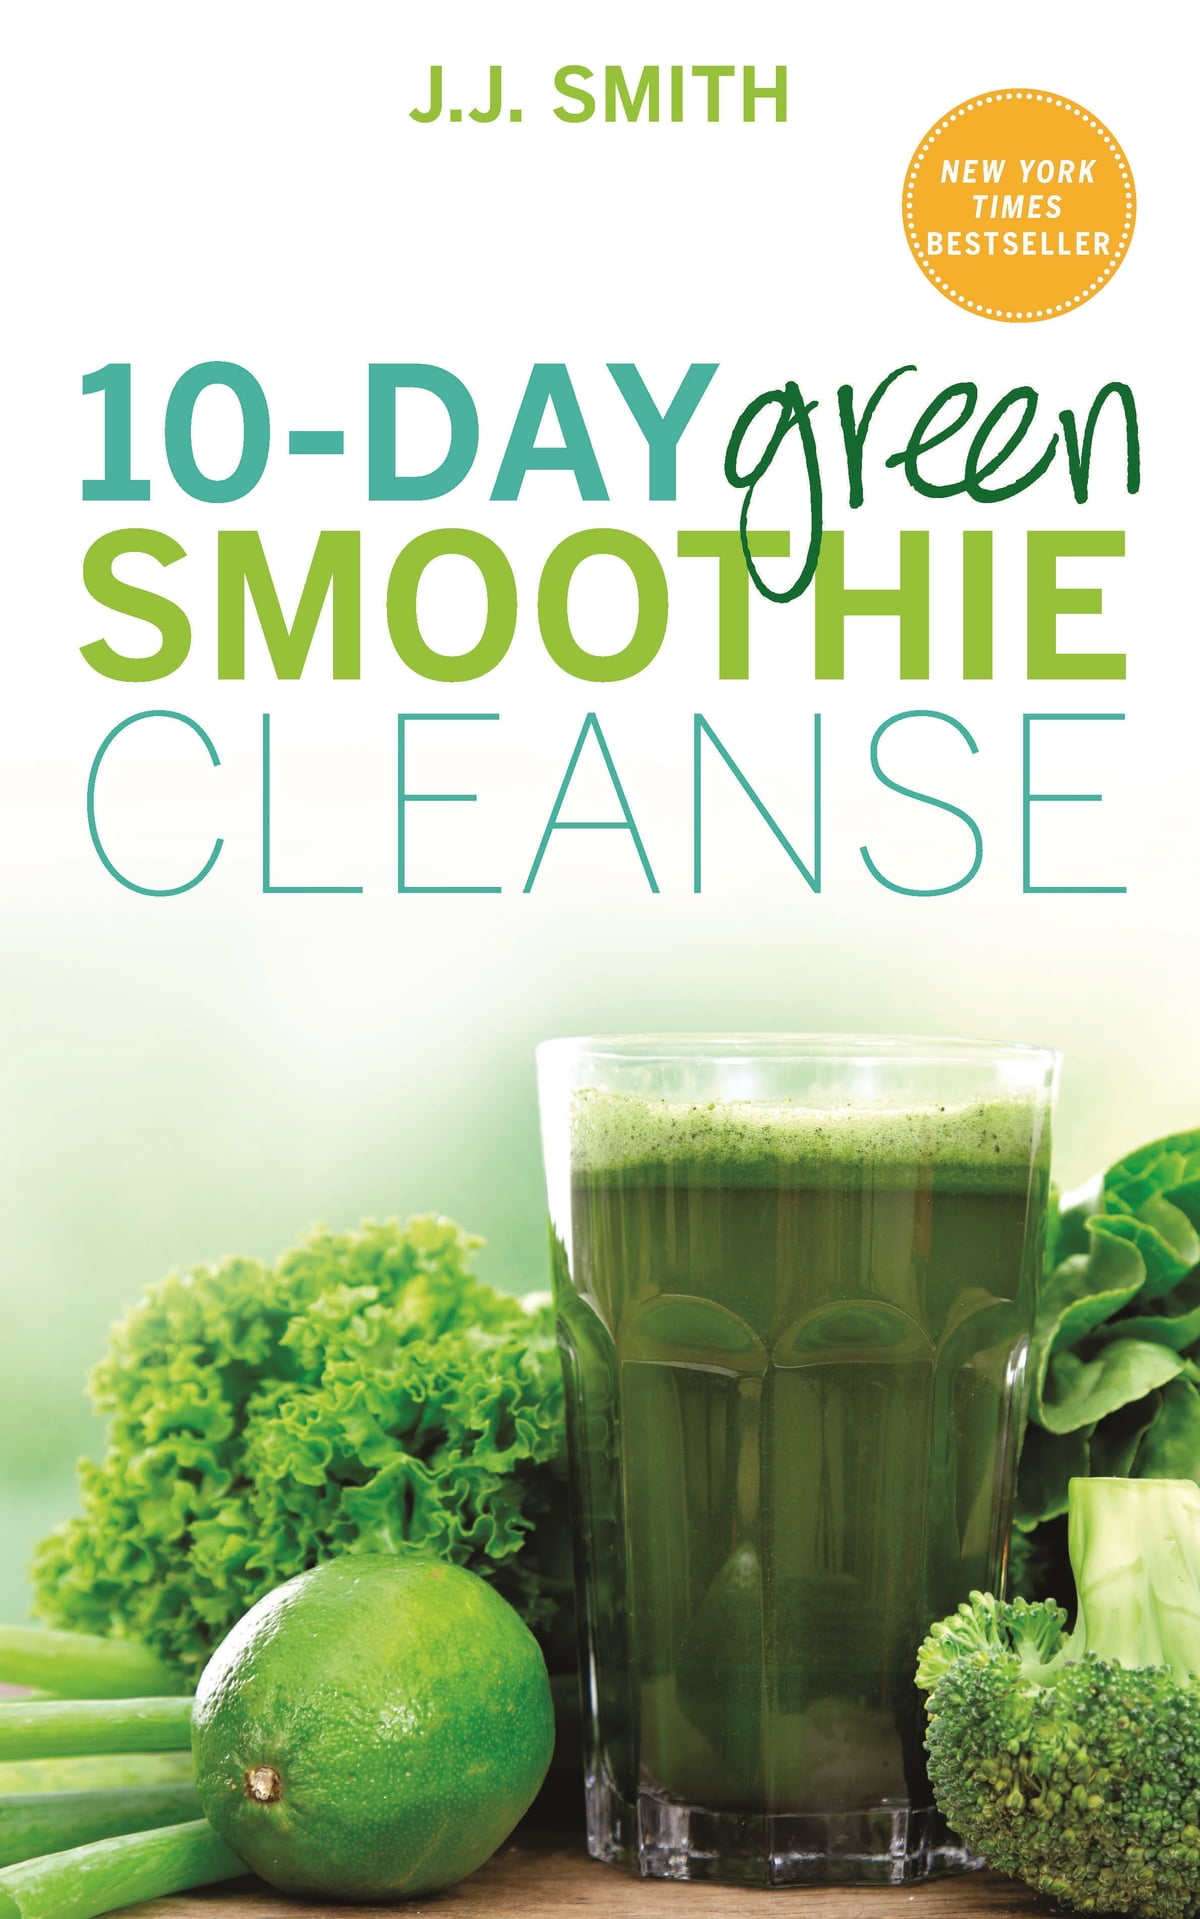 10-Day Green Smoothie Cleanse eBook by JJ Smith - 9781781805657 | Rakuten  Kobo